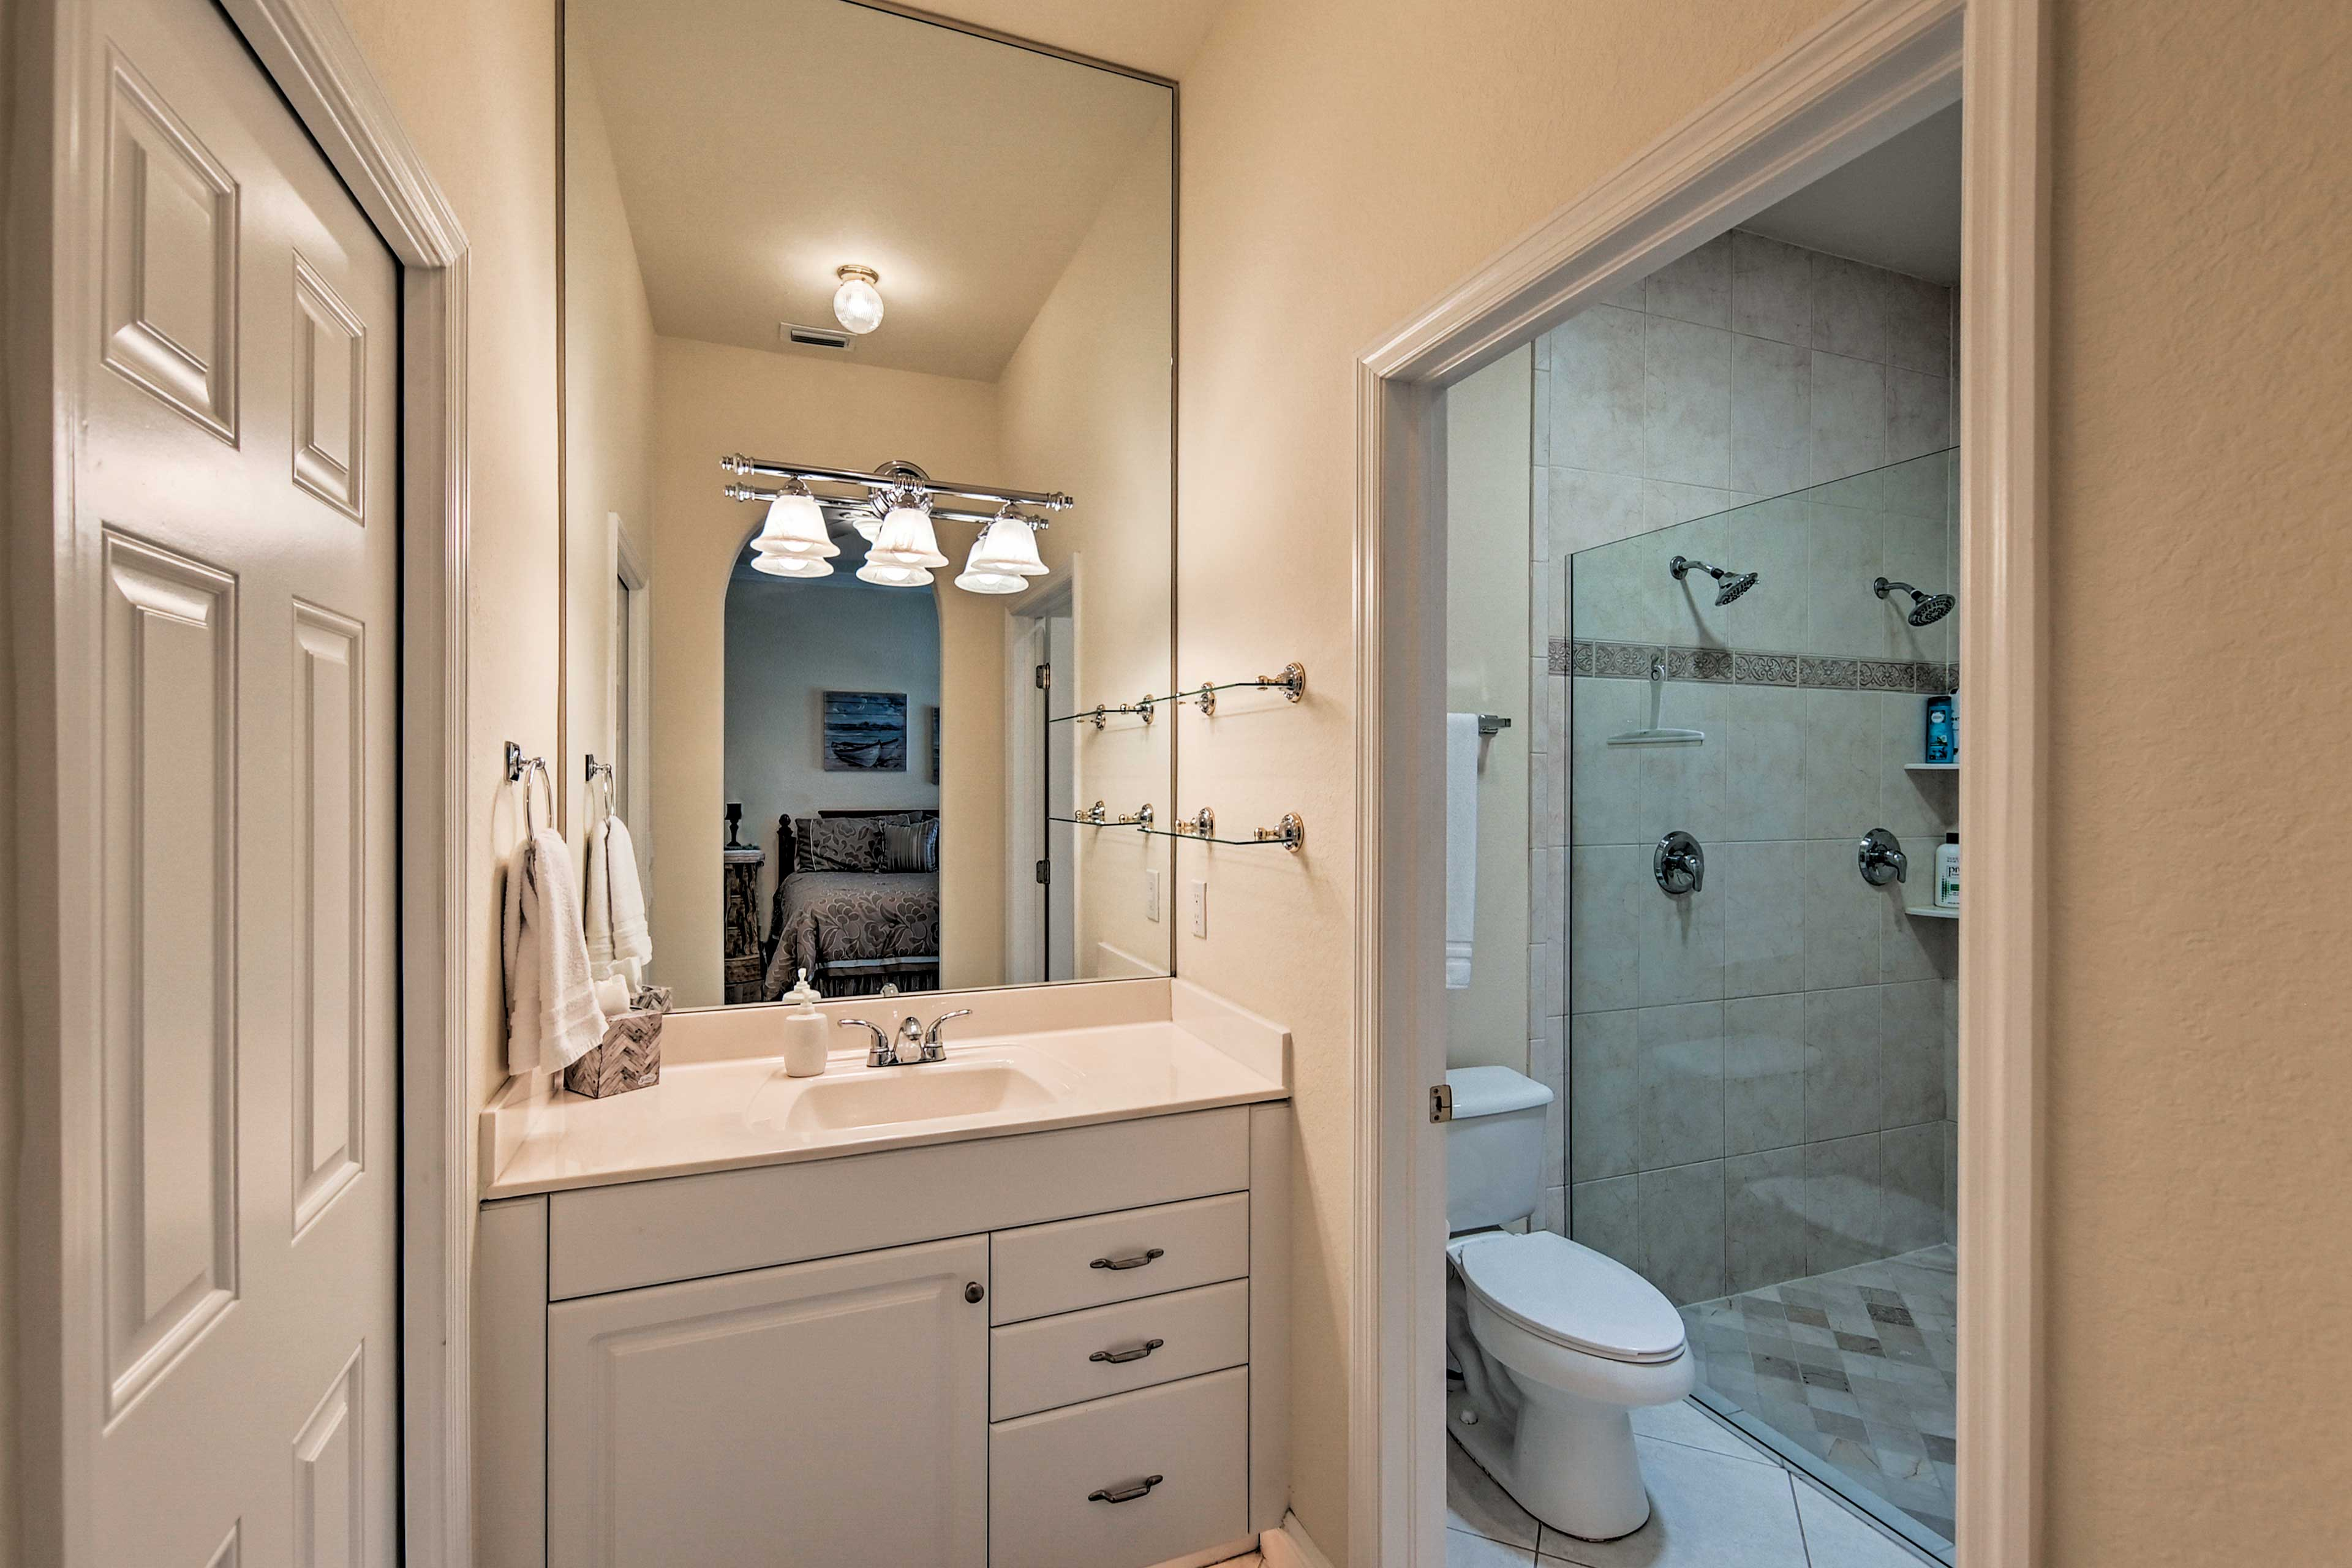 There's plenty of room for your toiletries in the master en-suite bathroom.